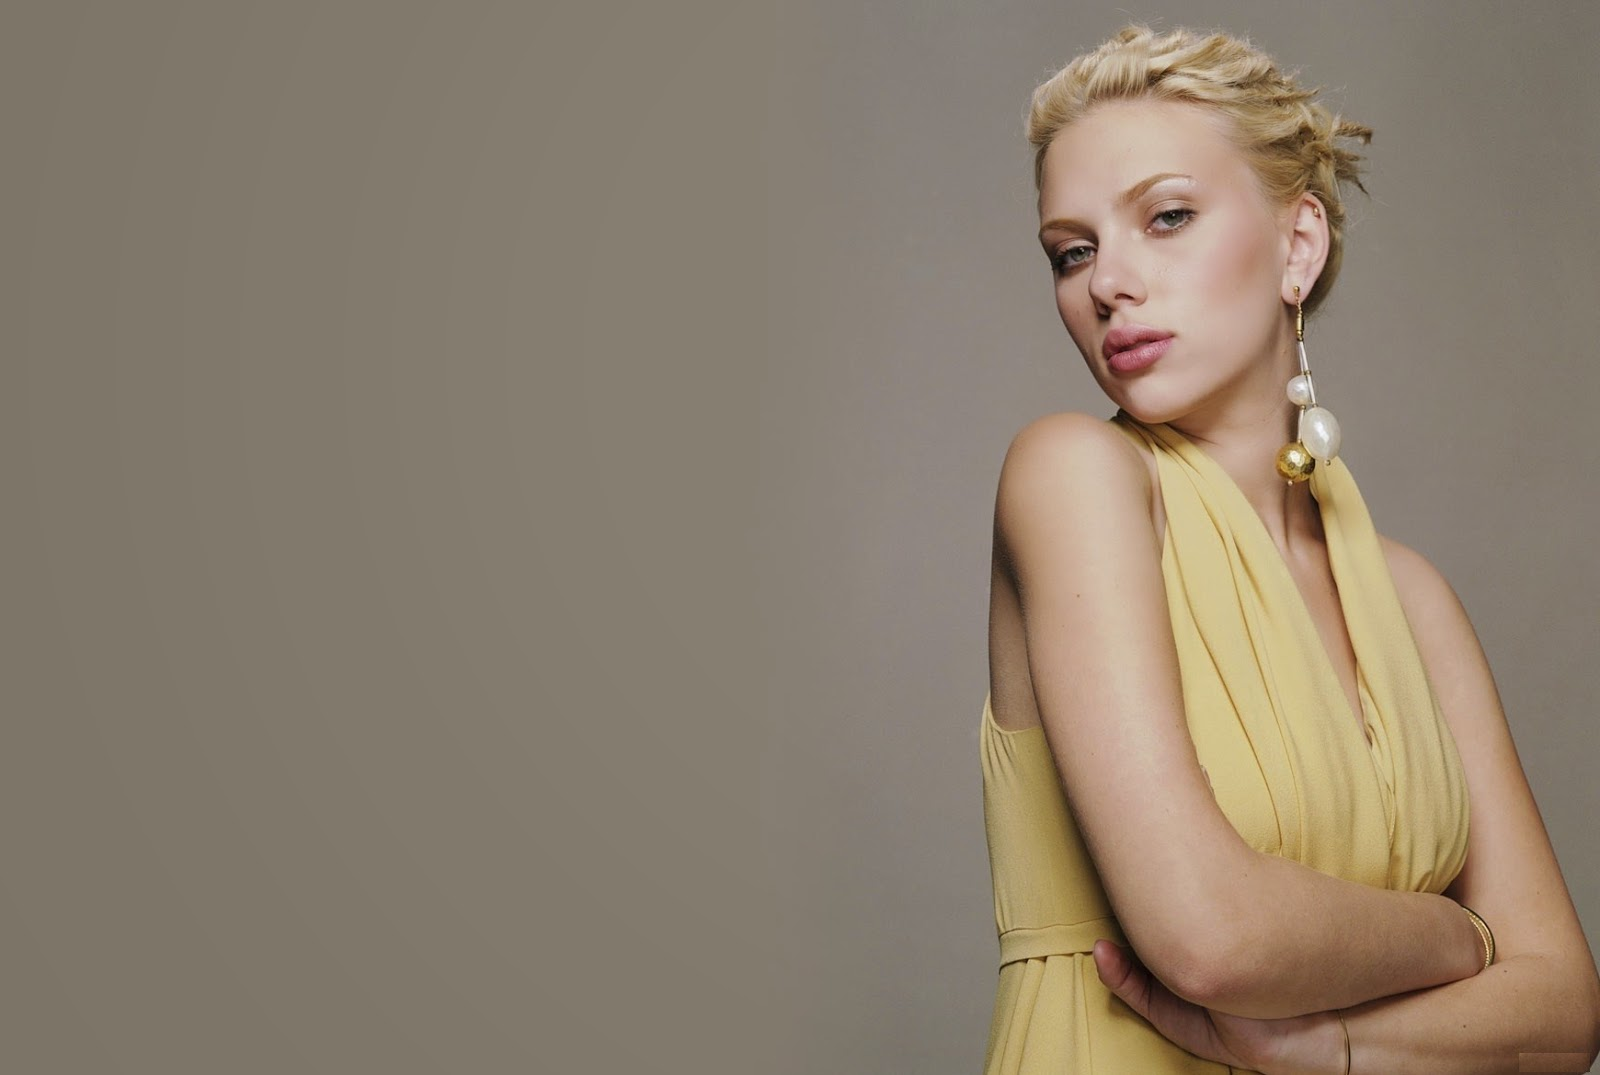 Scarlett Johansson Wallpaper: Scarlett Johansson Profile And New Hd Wallpapers 2013-14